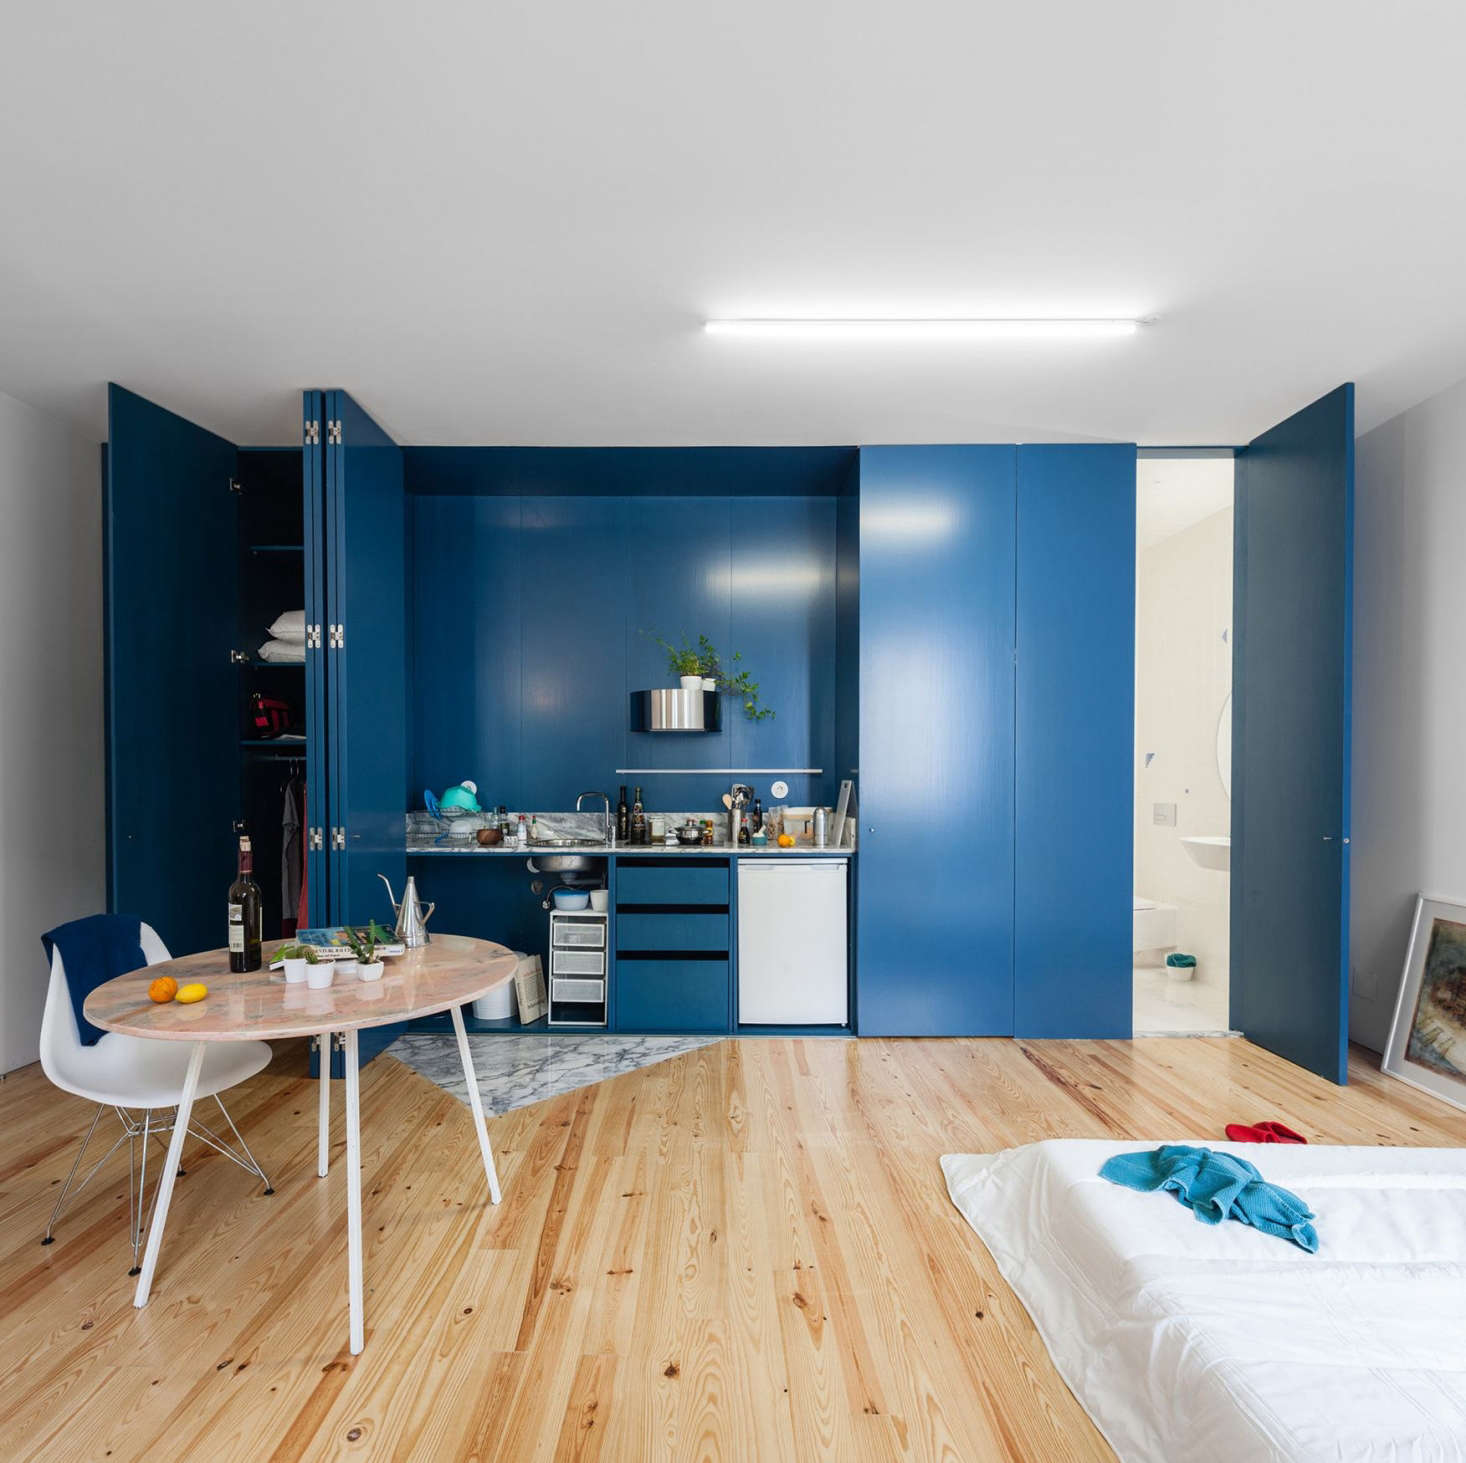 In a house in Porto transformed into studio apartments by Portuguese firmFala Atelier, plywood cabinets conceal everything, including the compact kitchen.